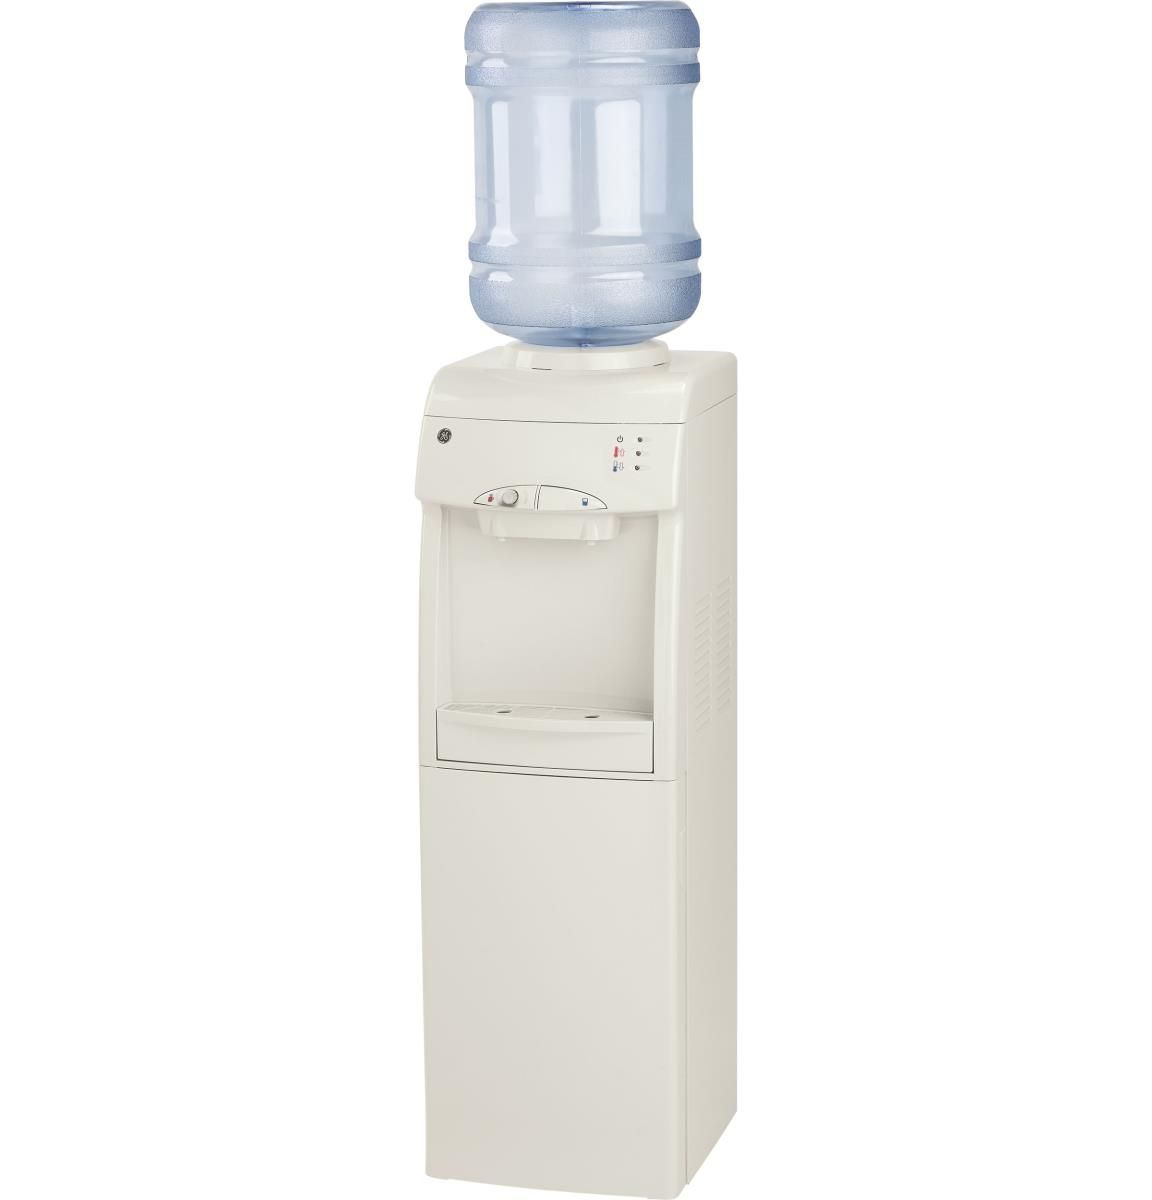 Ge Gxcf05d Refurbished Hot And Cold Freestanding Water Dispenser Water Coolers Water Dispenser Portable Ice Maker